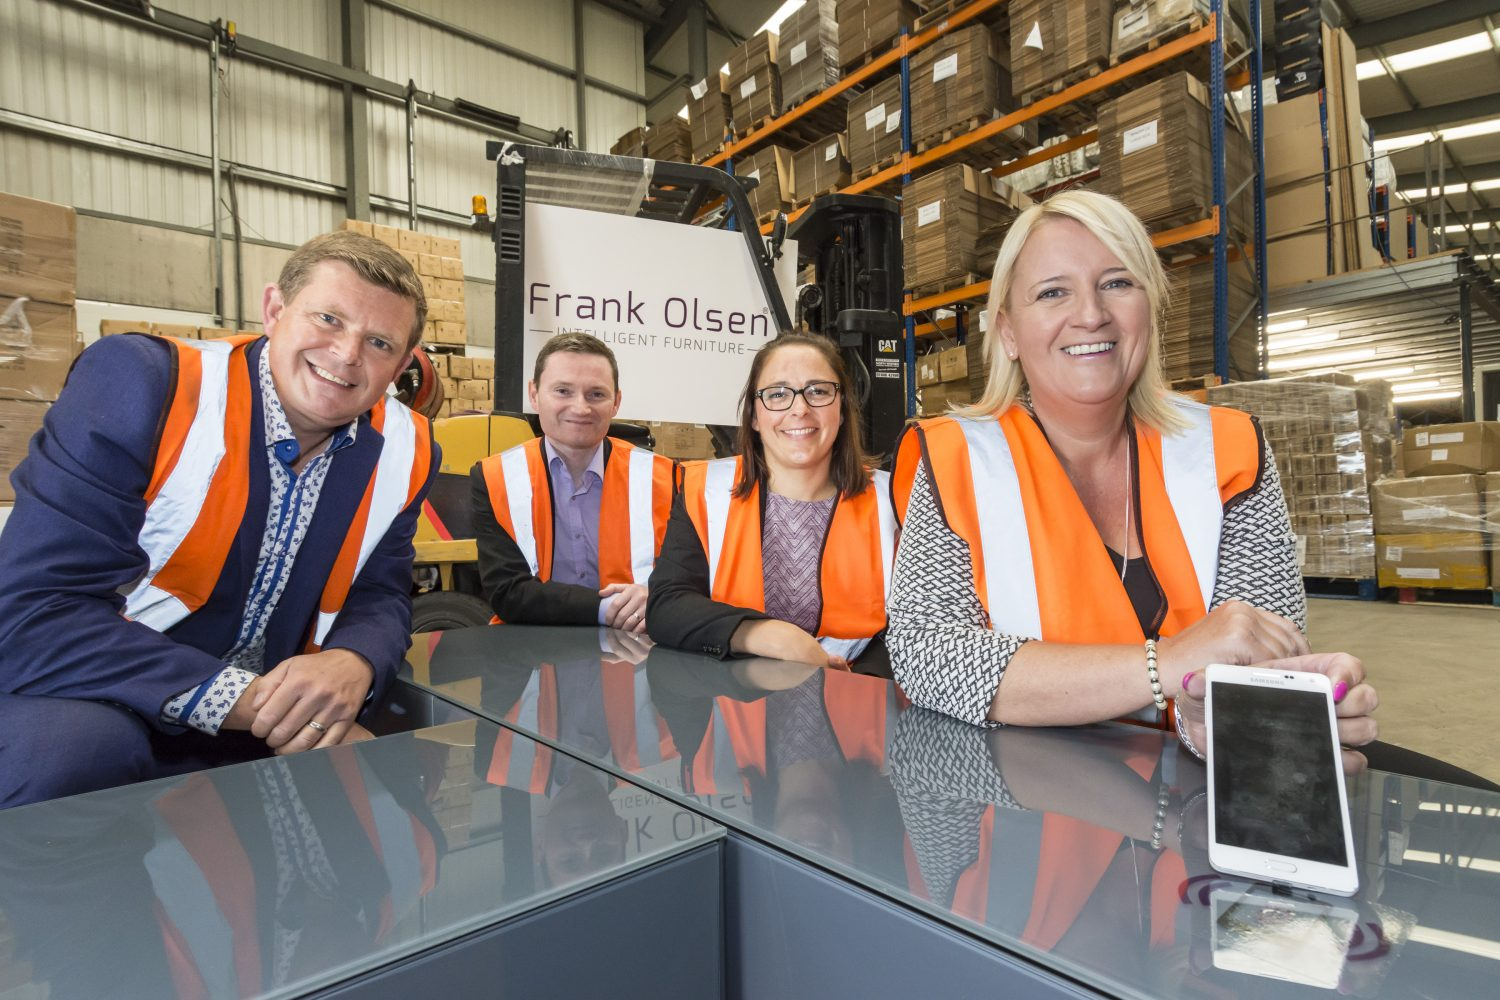 Four women standing in a factory with Frank Olsen signage behind them. They are all wearing high vis jackets. There are two women in the group and the woman to the far right has blonde hair and standing next to her is a woman with dark hair wearing glasses.